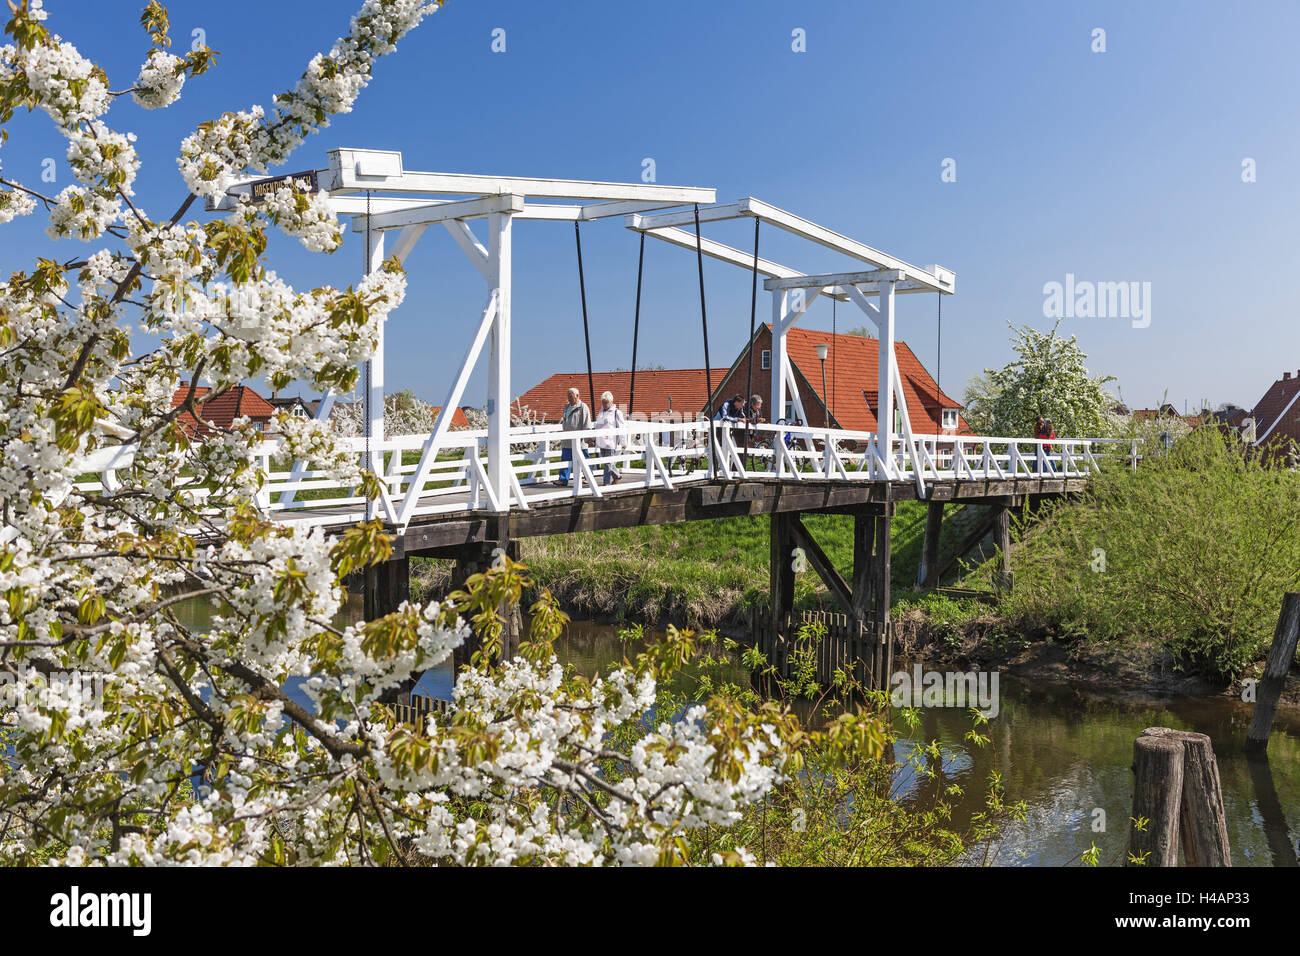 hogendiek bridge steinkirchen stockfotos hogendiek bridge steinkirchen bilder alamy. Black Bedroom Furniture Sets. Home Design Ideas